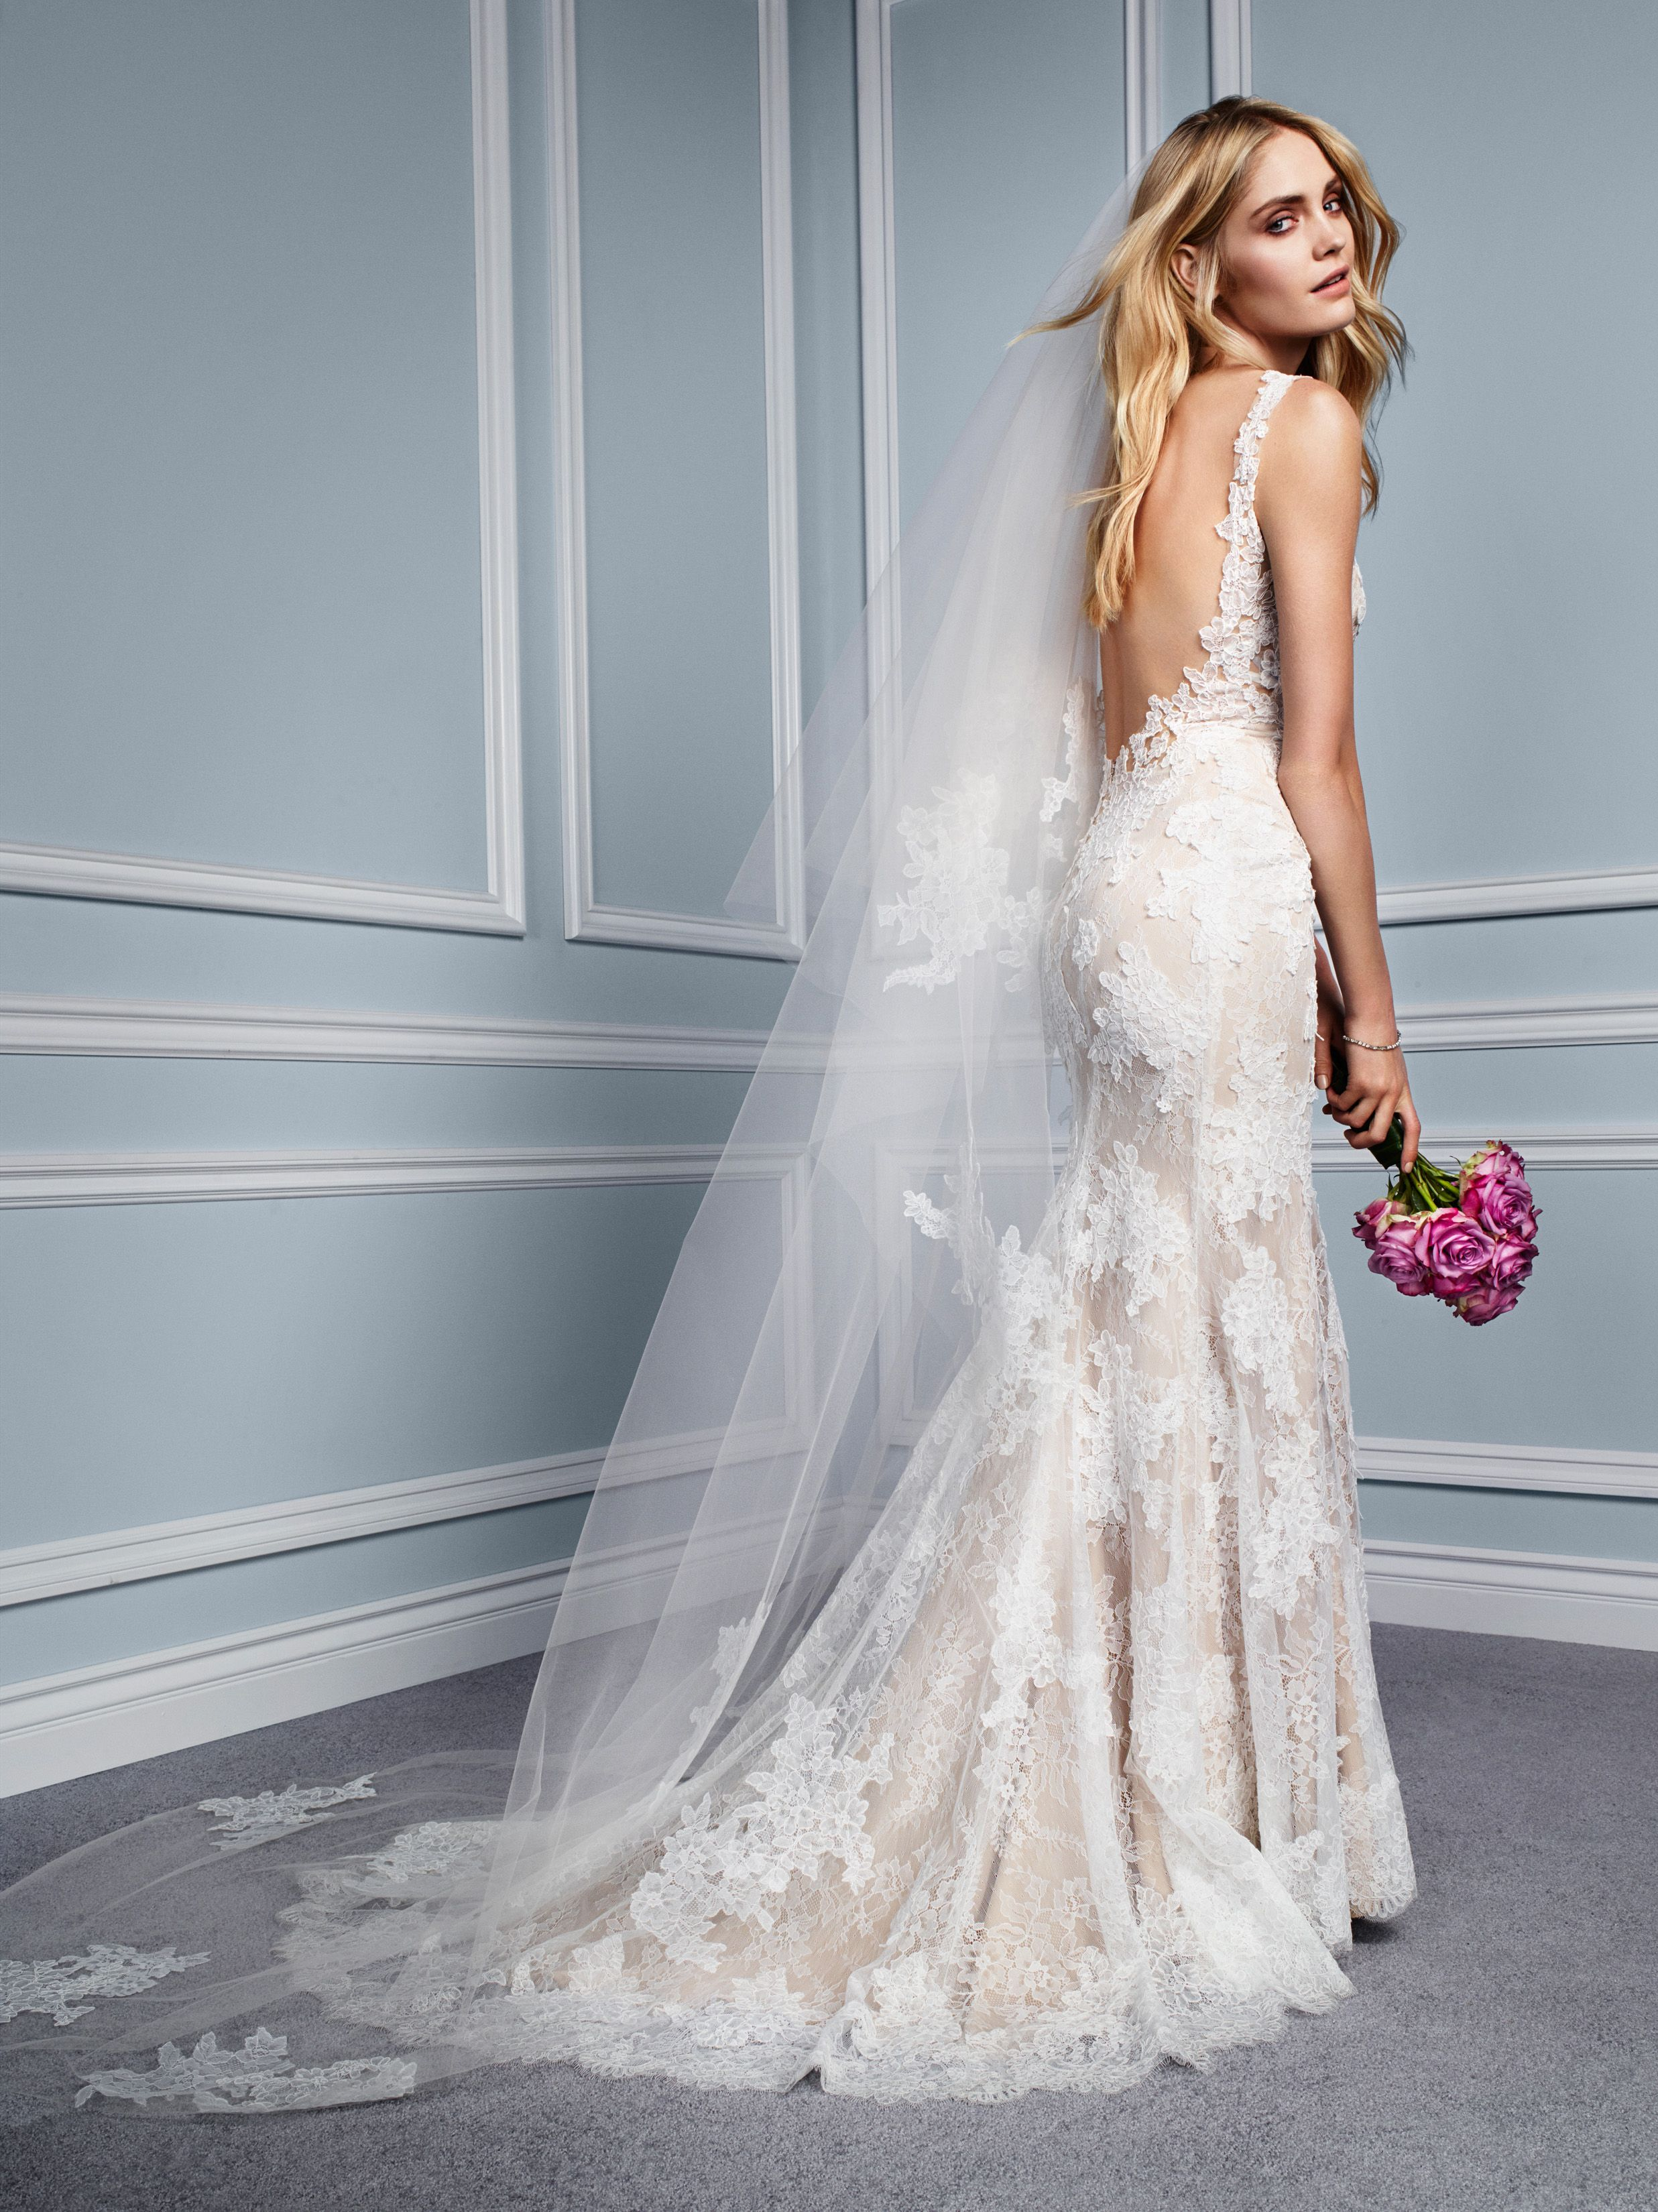 Monique Lhuillier wedding dress with low back. | wedding dress ...